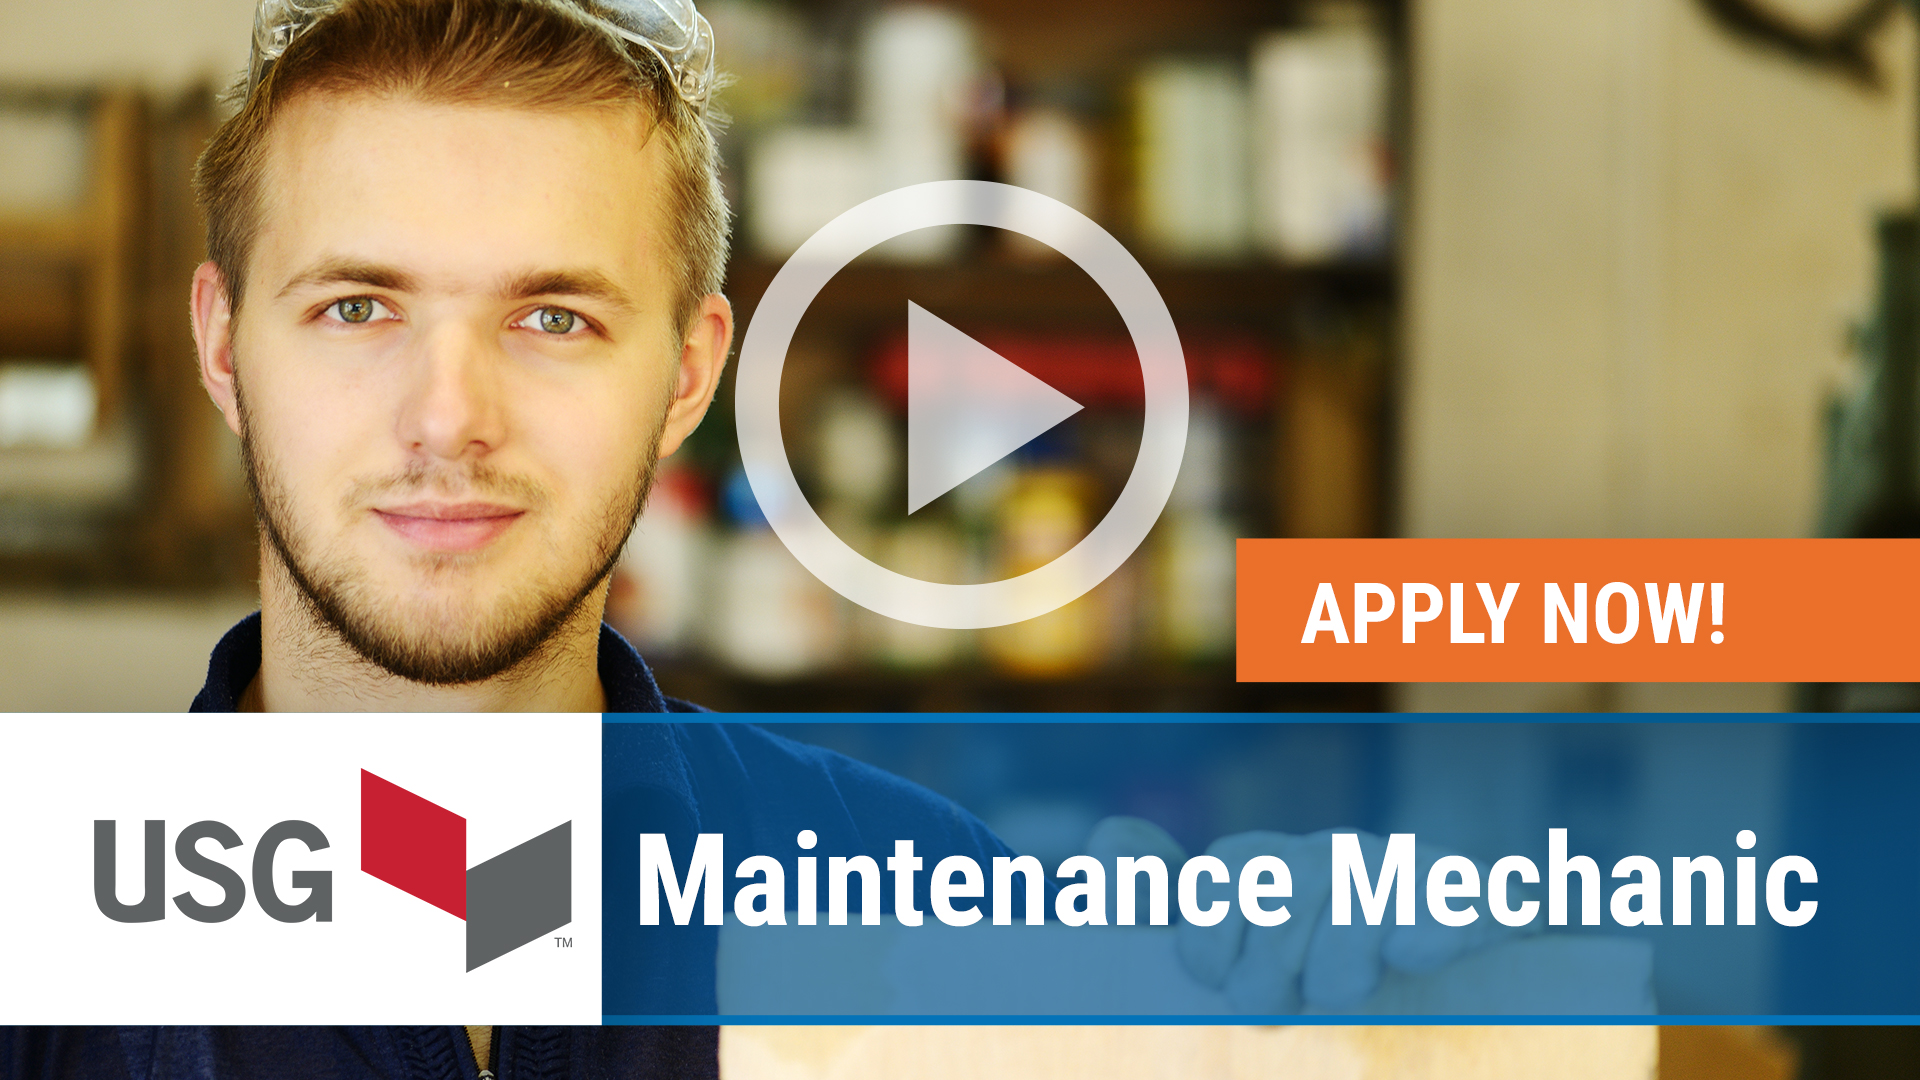 Watch our careers video for available job opening Maintenance Mechanic in Gypsum, OH